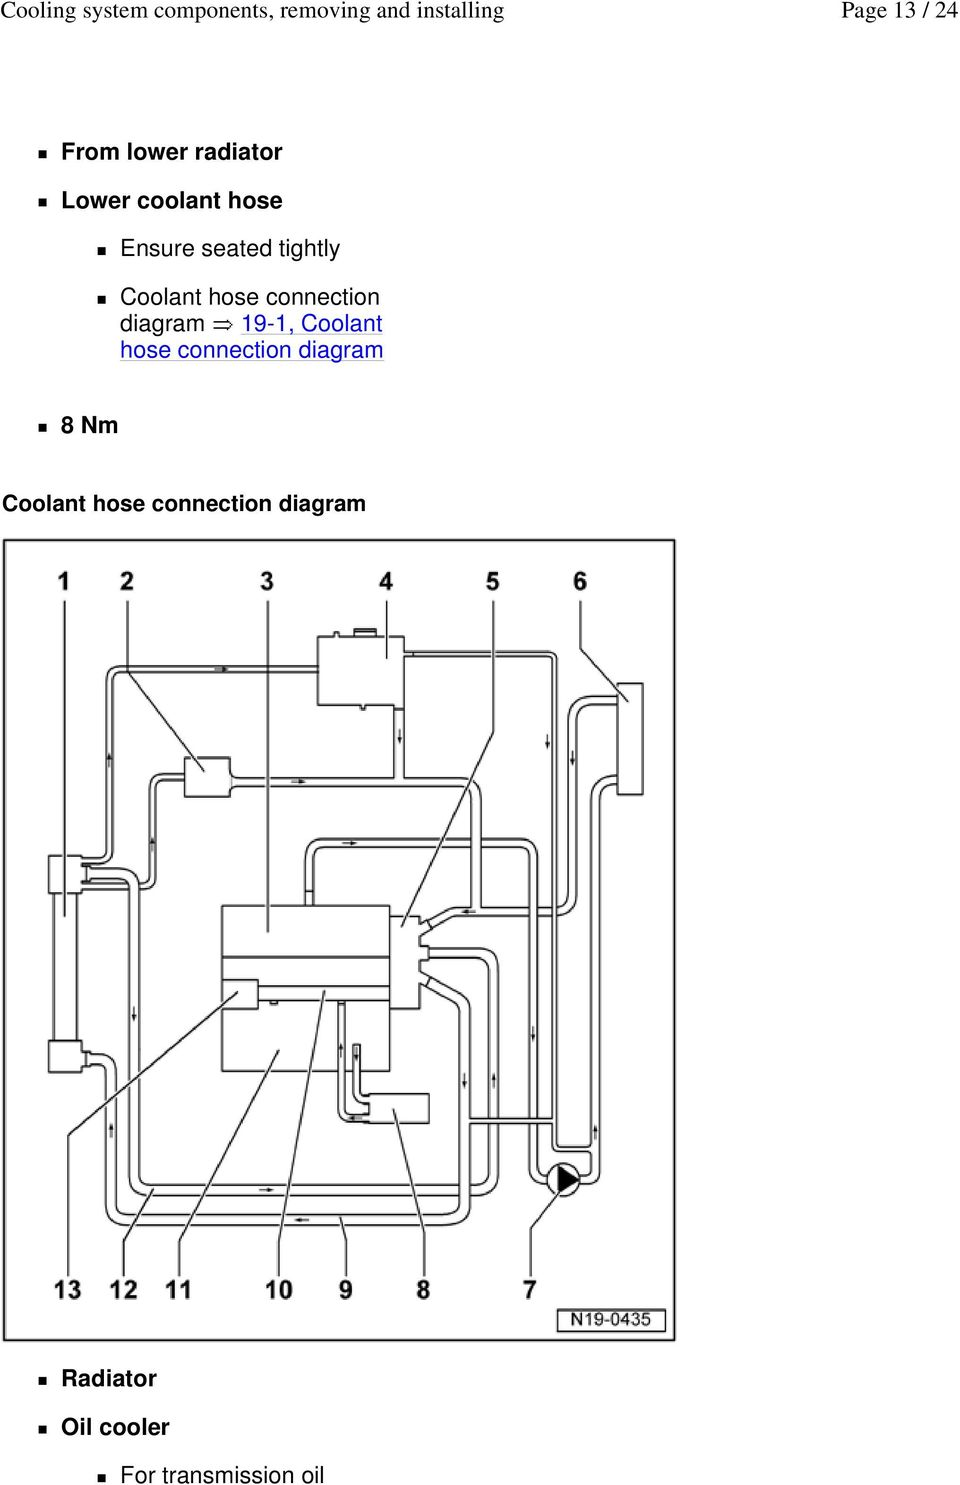 hight resolution of 19 1 coolant hose connection diagram 8 nm coolant hose